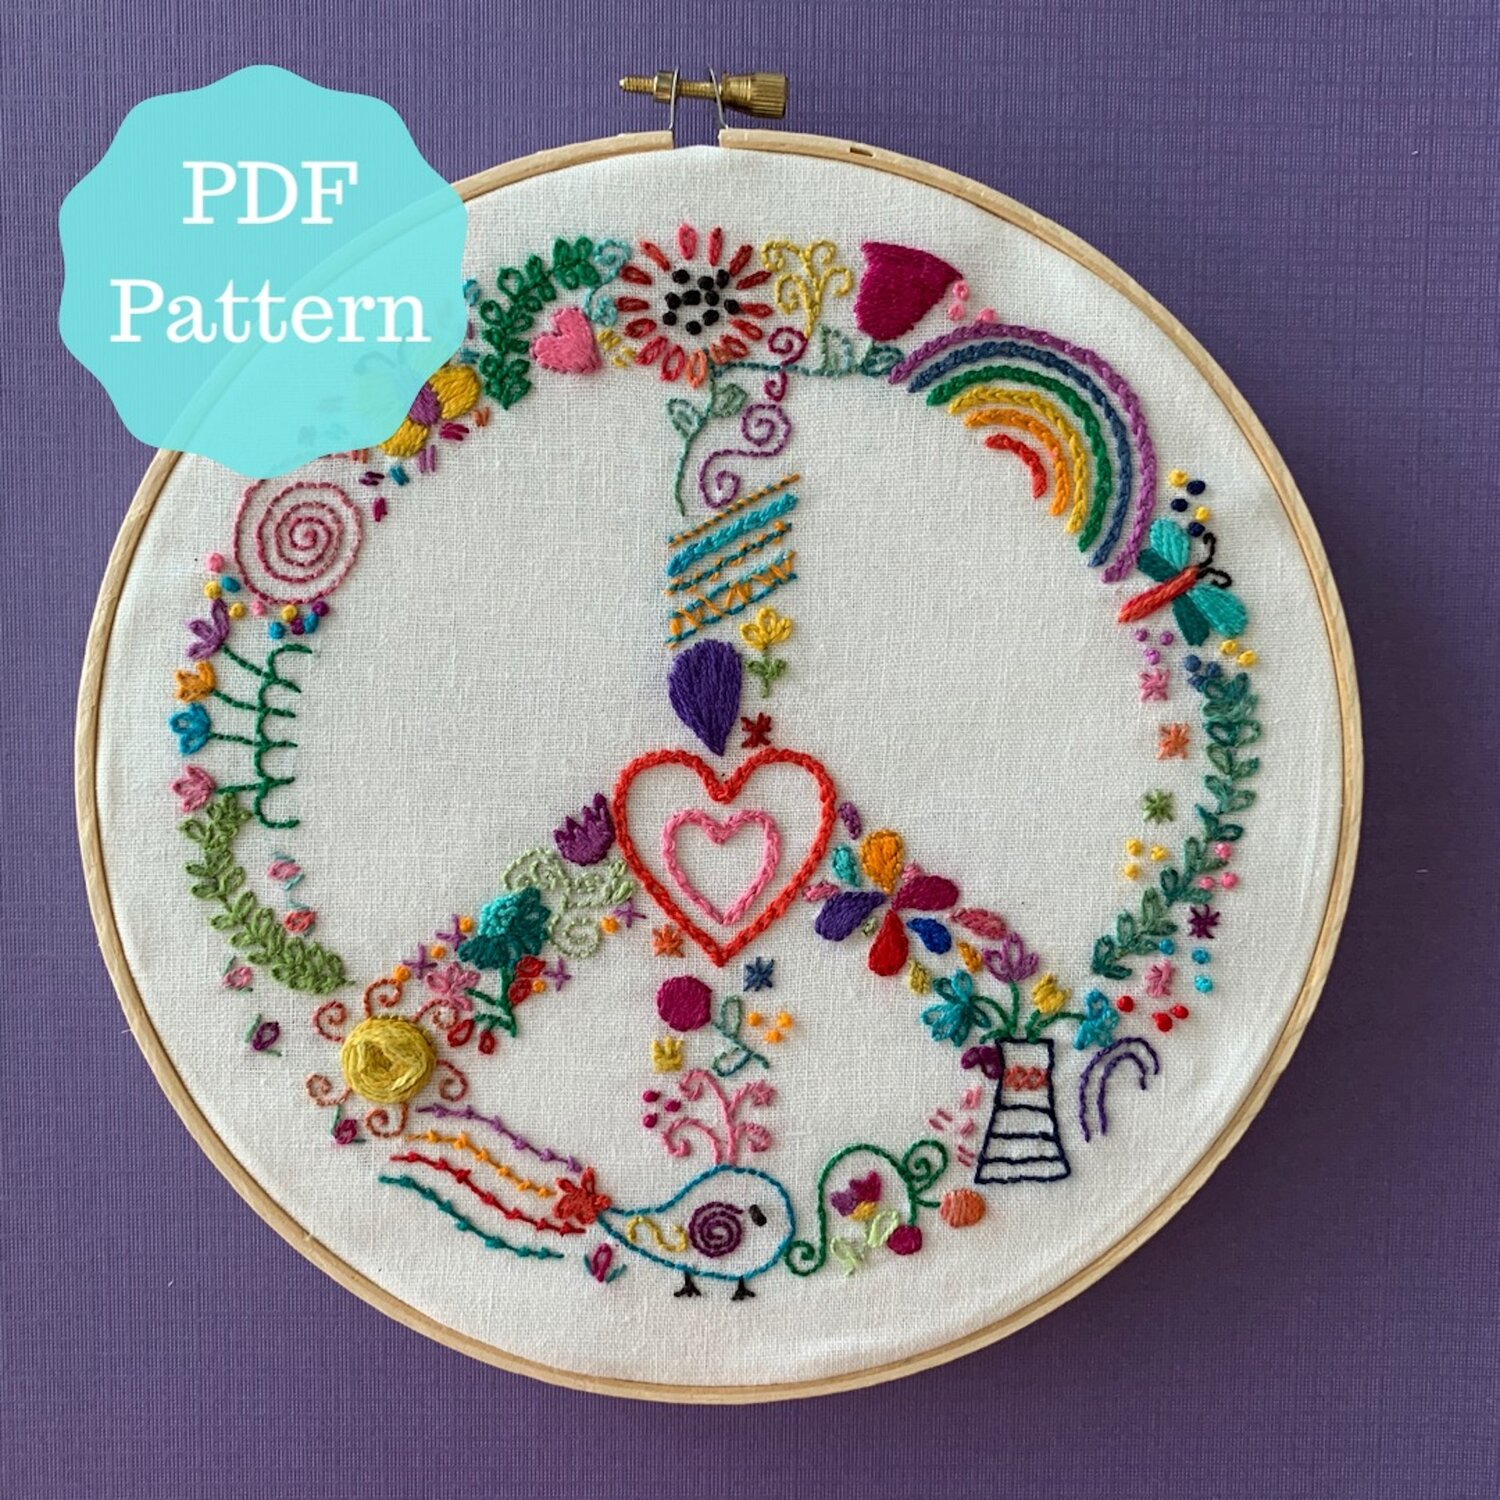 PDF pattern Peaceful Whimsy hand embroidery pattern — The Craft Table